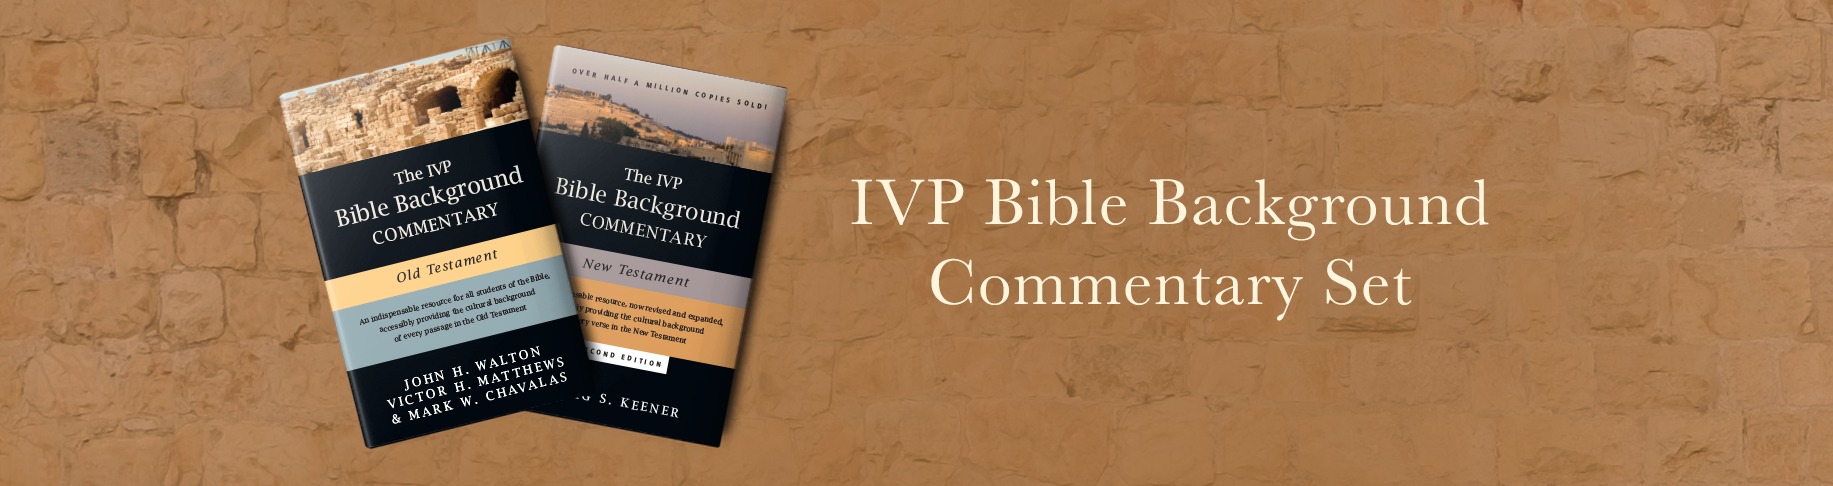 IVP Bible Background Commentary Set